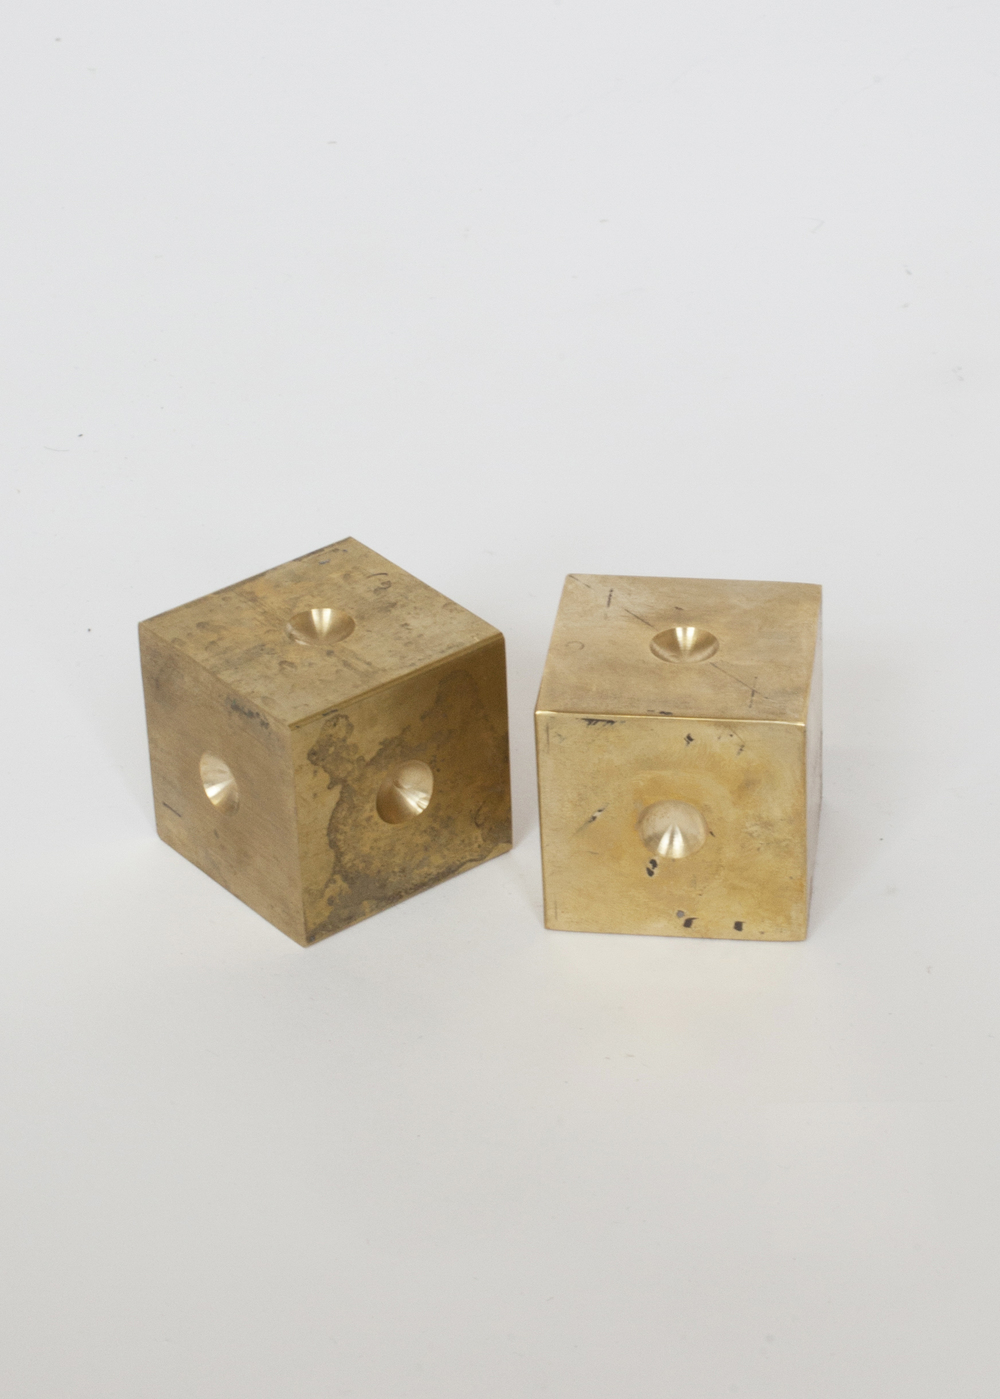 """PAPER WEIGHT 1 of 1 BRASS 2""""W x 2""""D x 2""""H INQUIRE TO PURCHASE IN STOCK"""